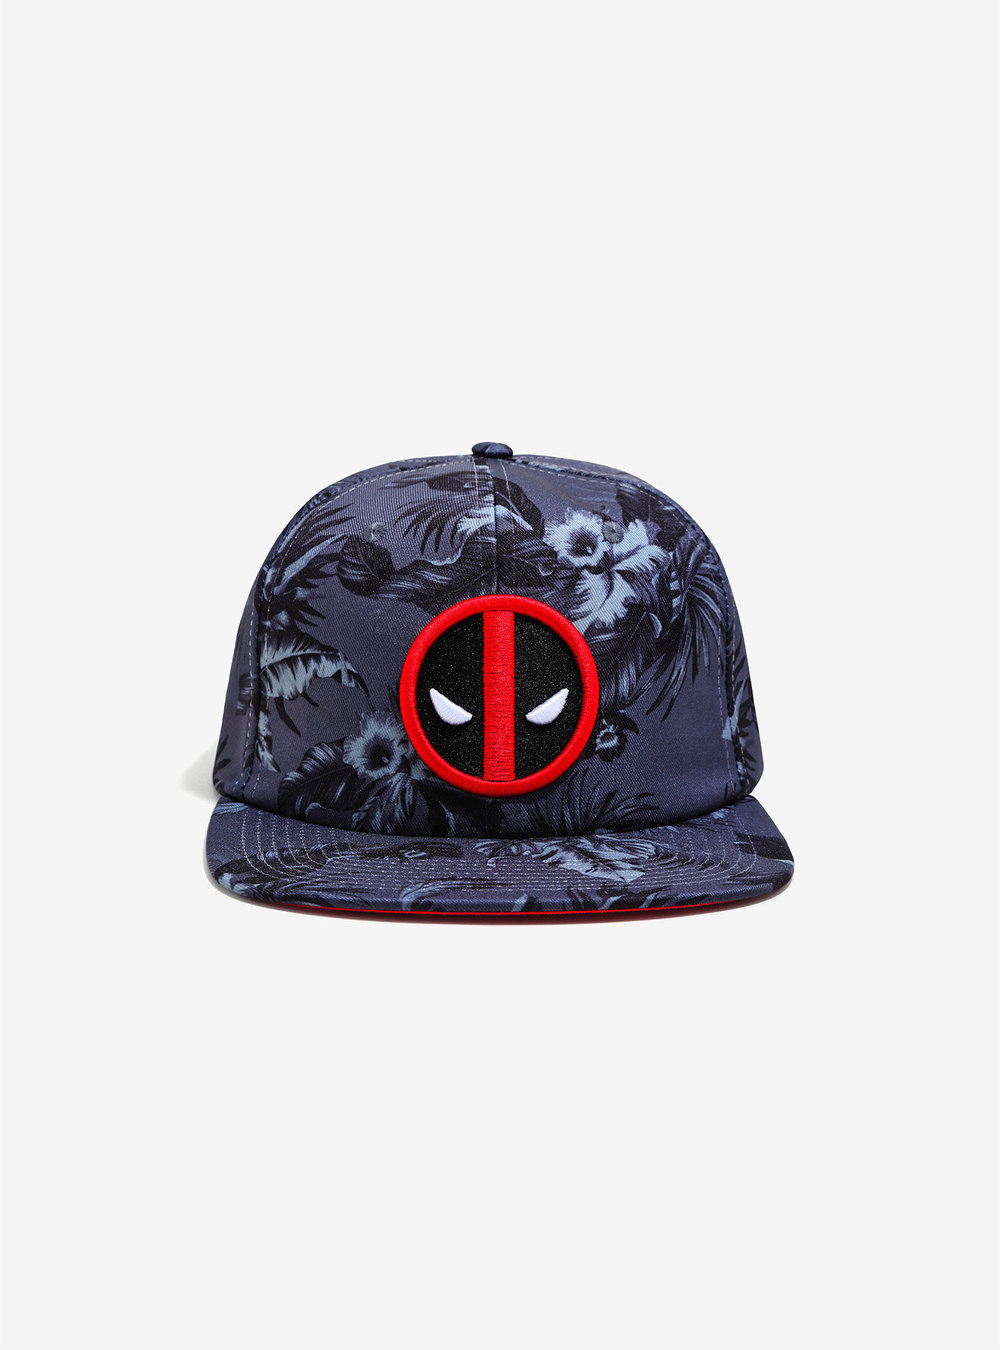 DP hawaiian hat.jpg